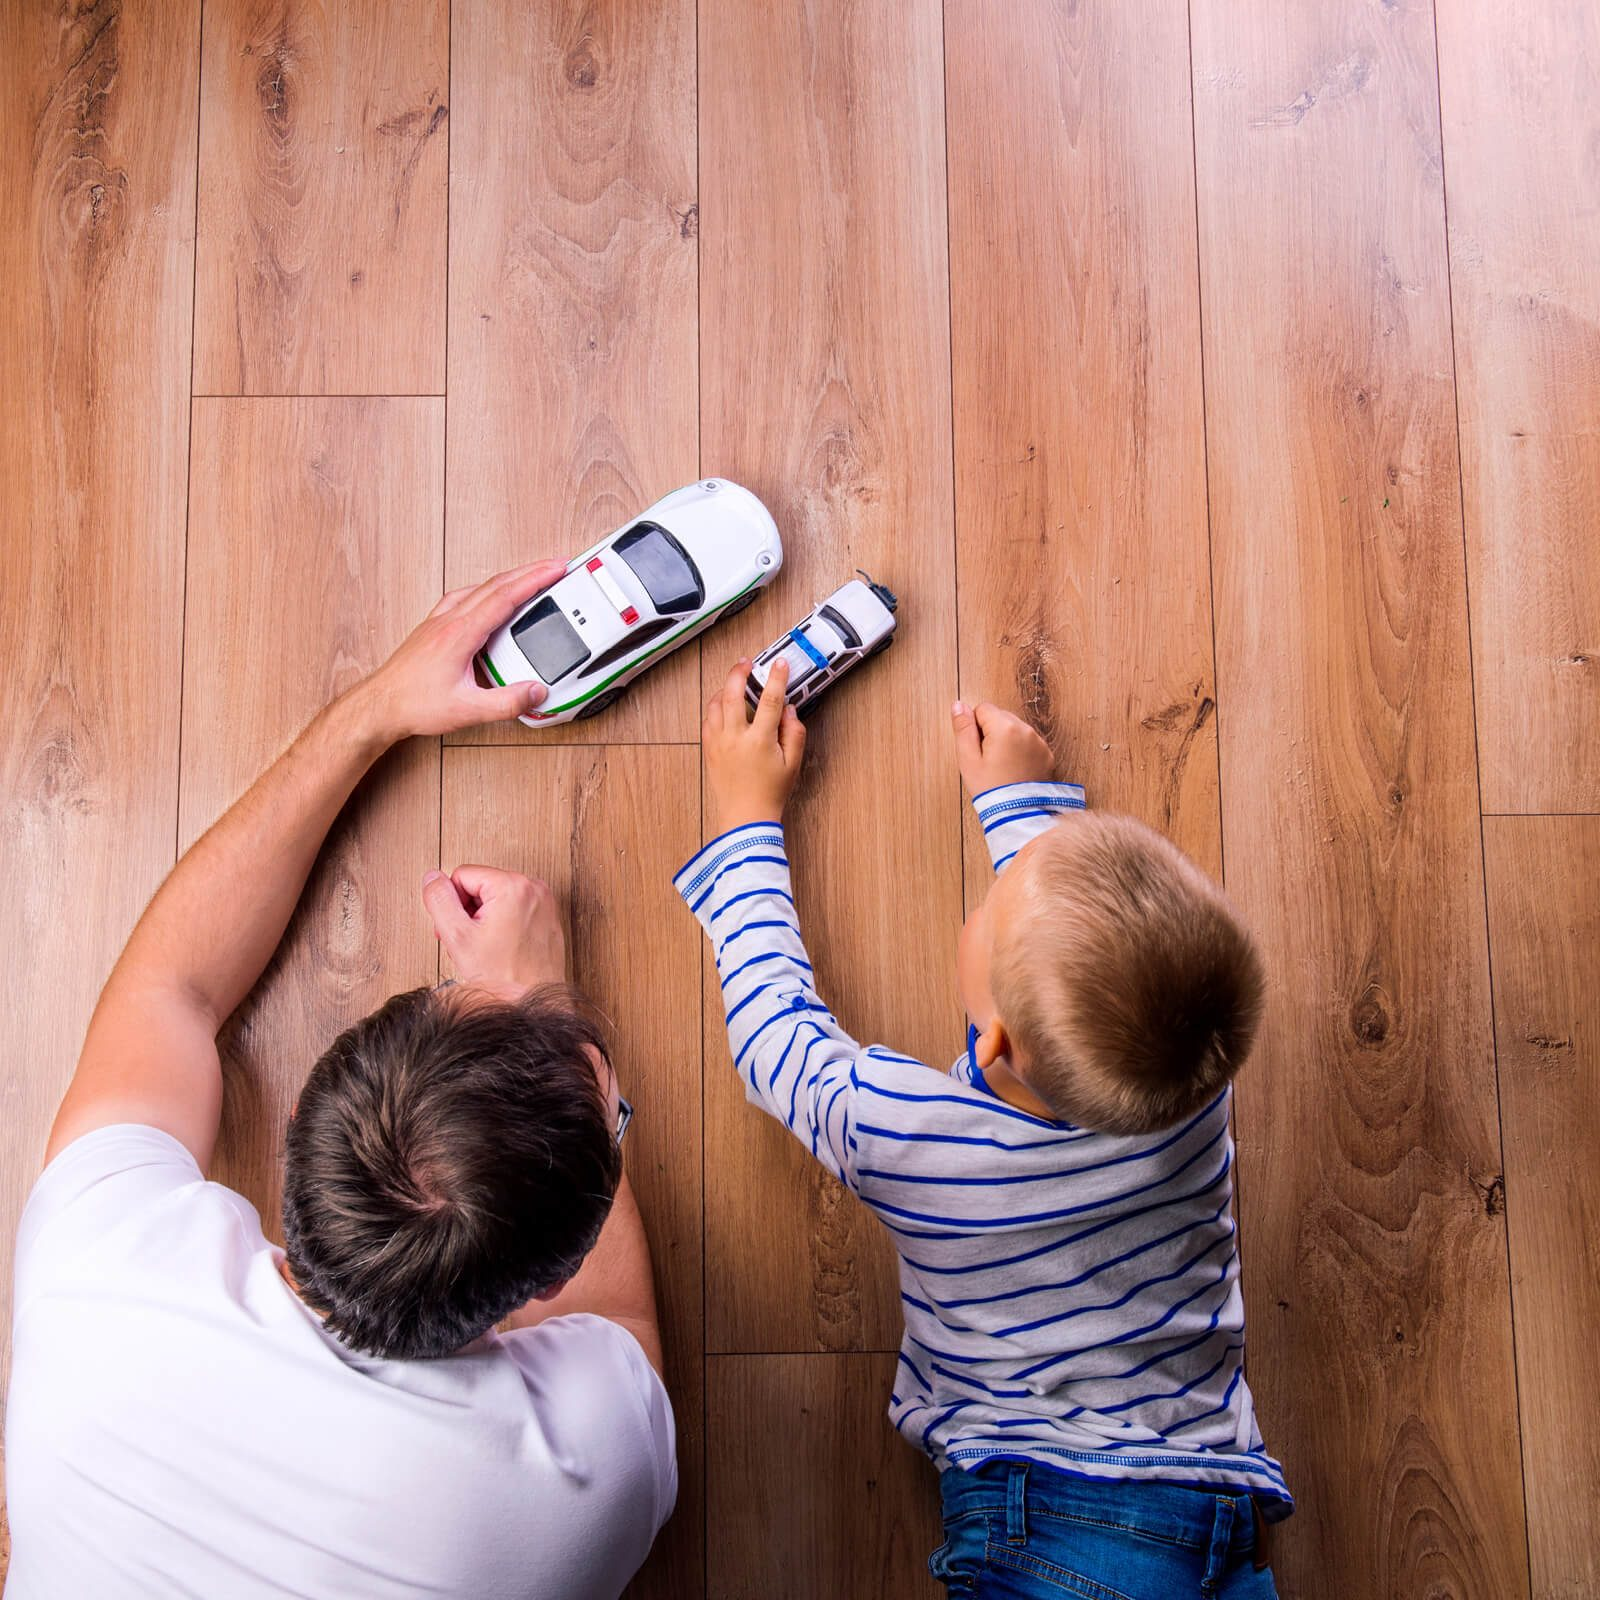 Father and kid playing with toycar | J/K Carpet Center, Inc